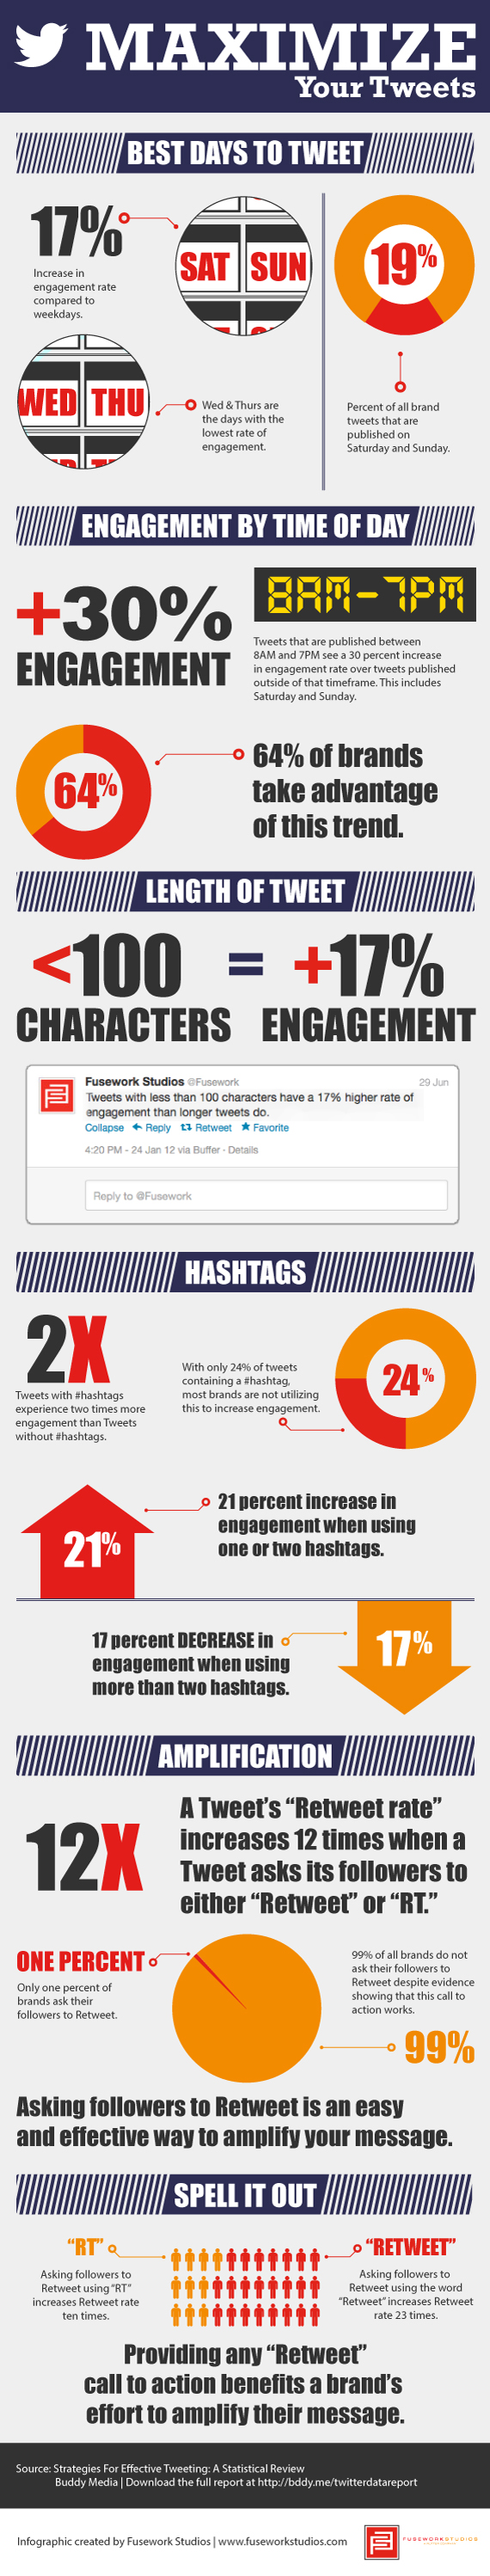 13 Twitter Stats You Need to Know to Maximise the Effect of Your Tweets